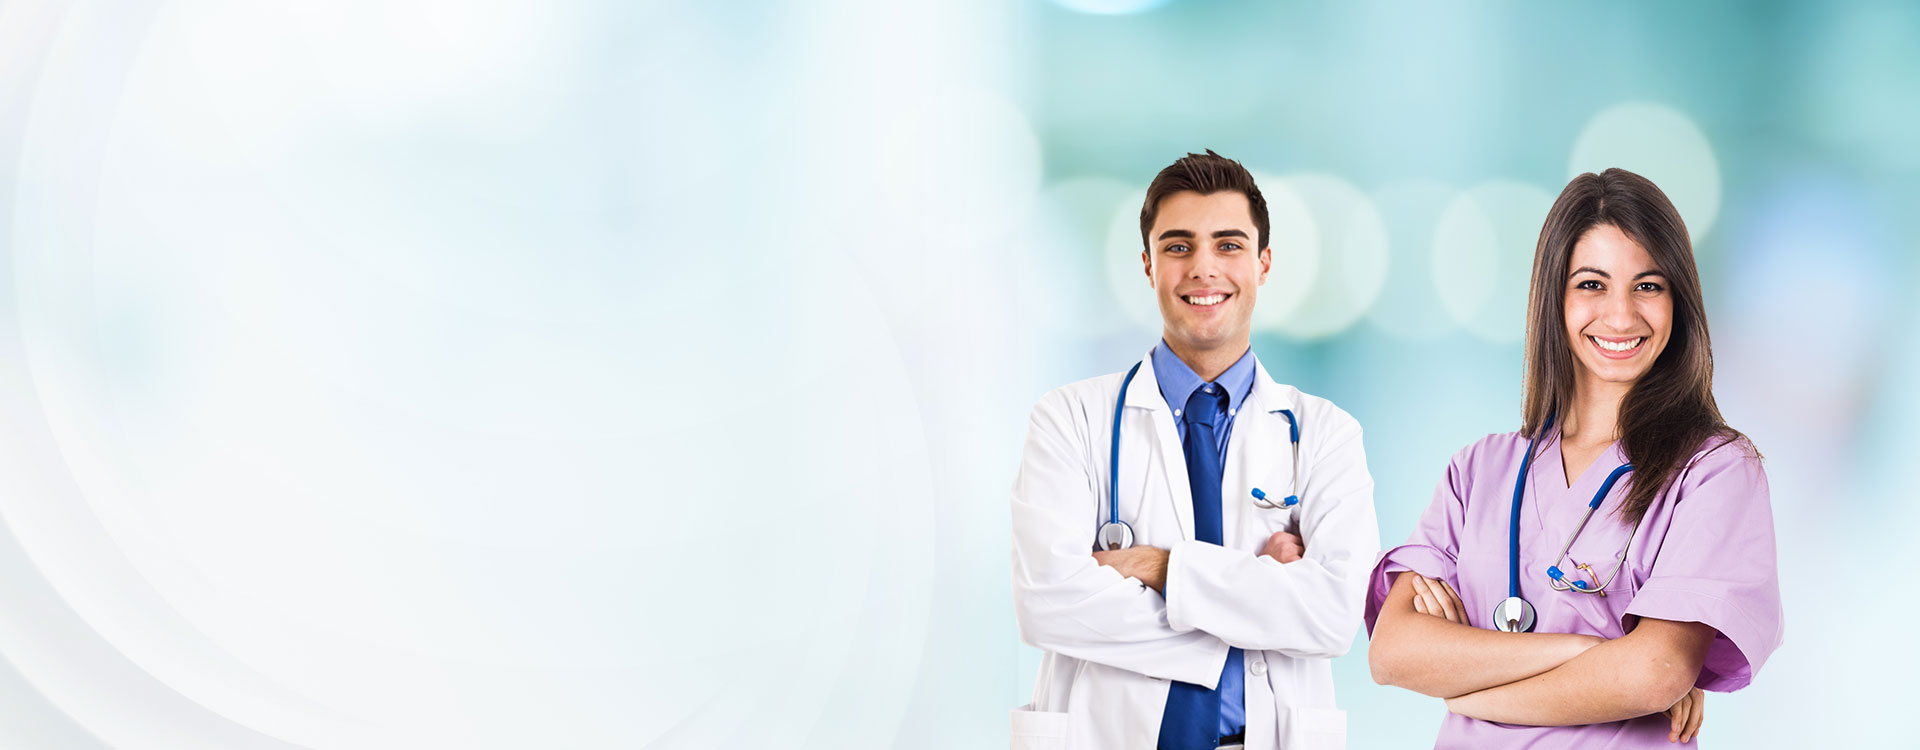 Medical Education | Gold Coast | Get professional real-world training for the Health industry